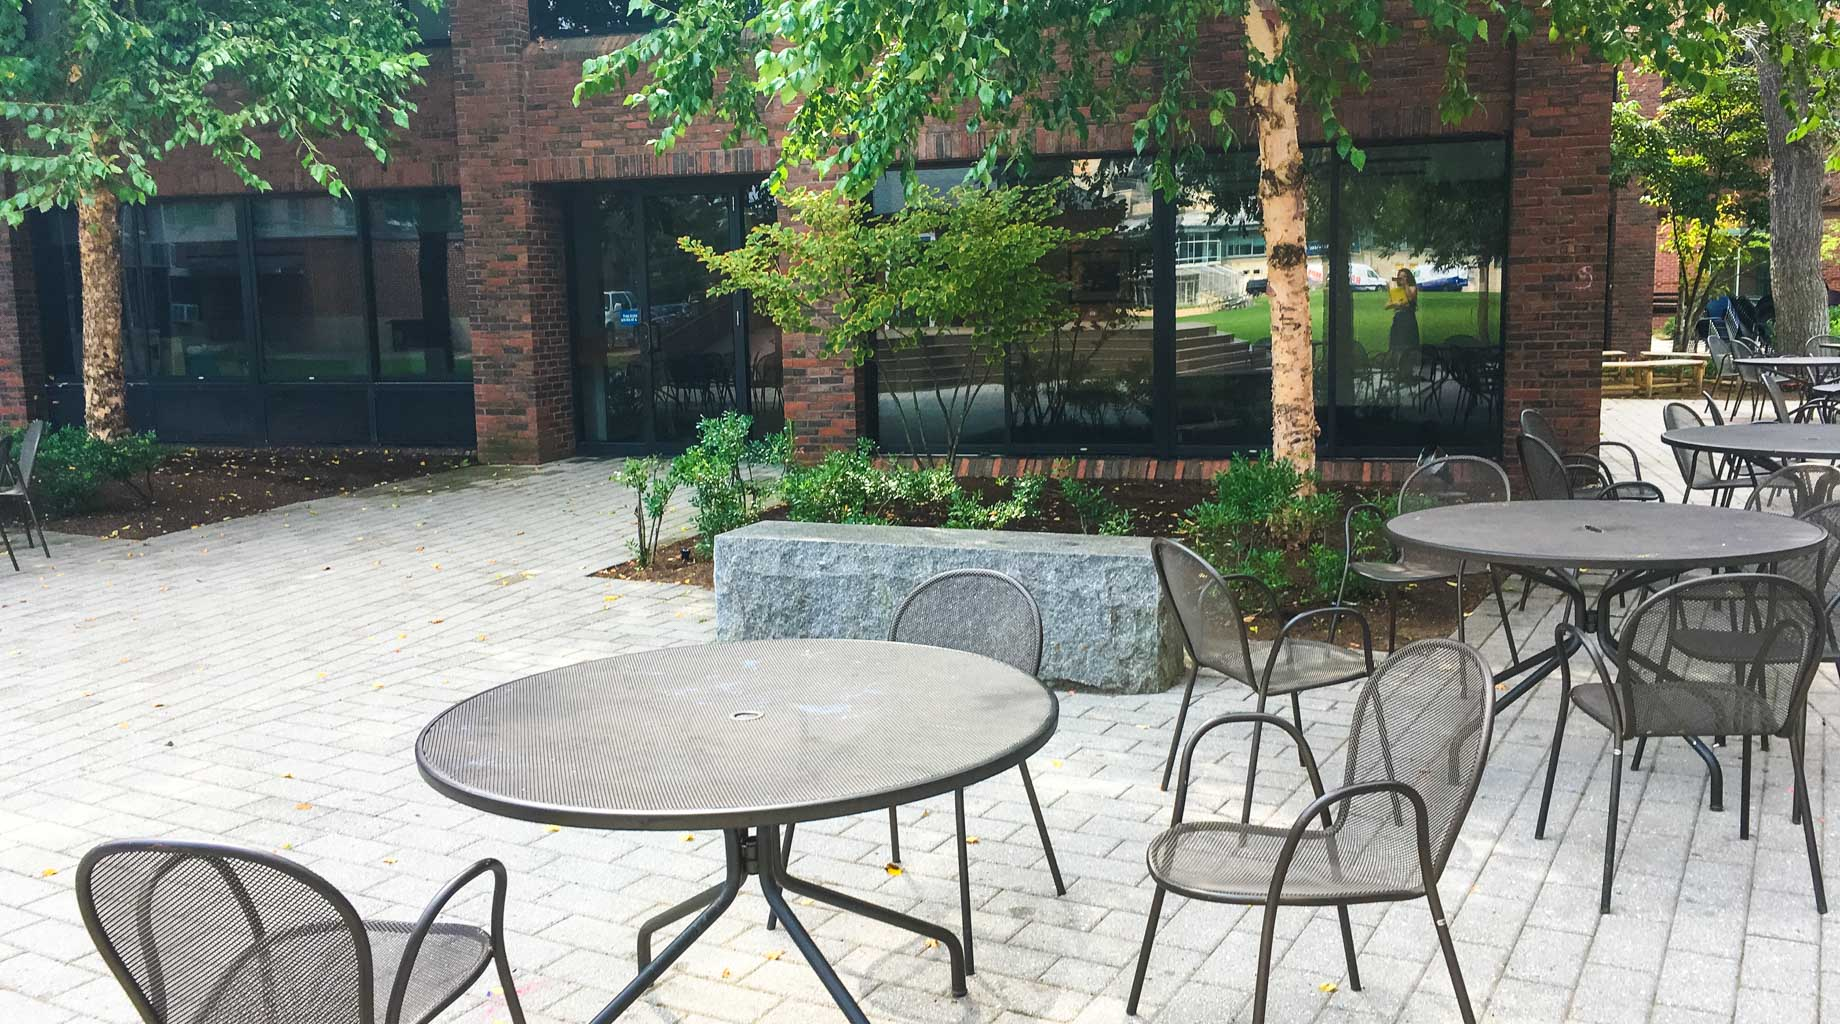 Tables and chairs in patio area